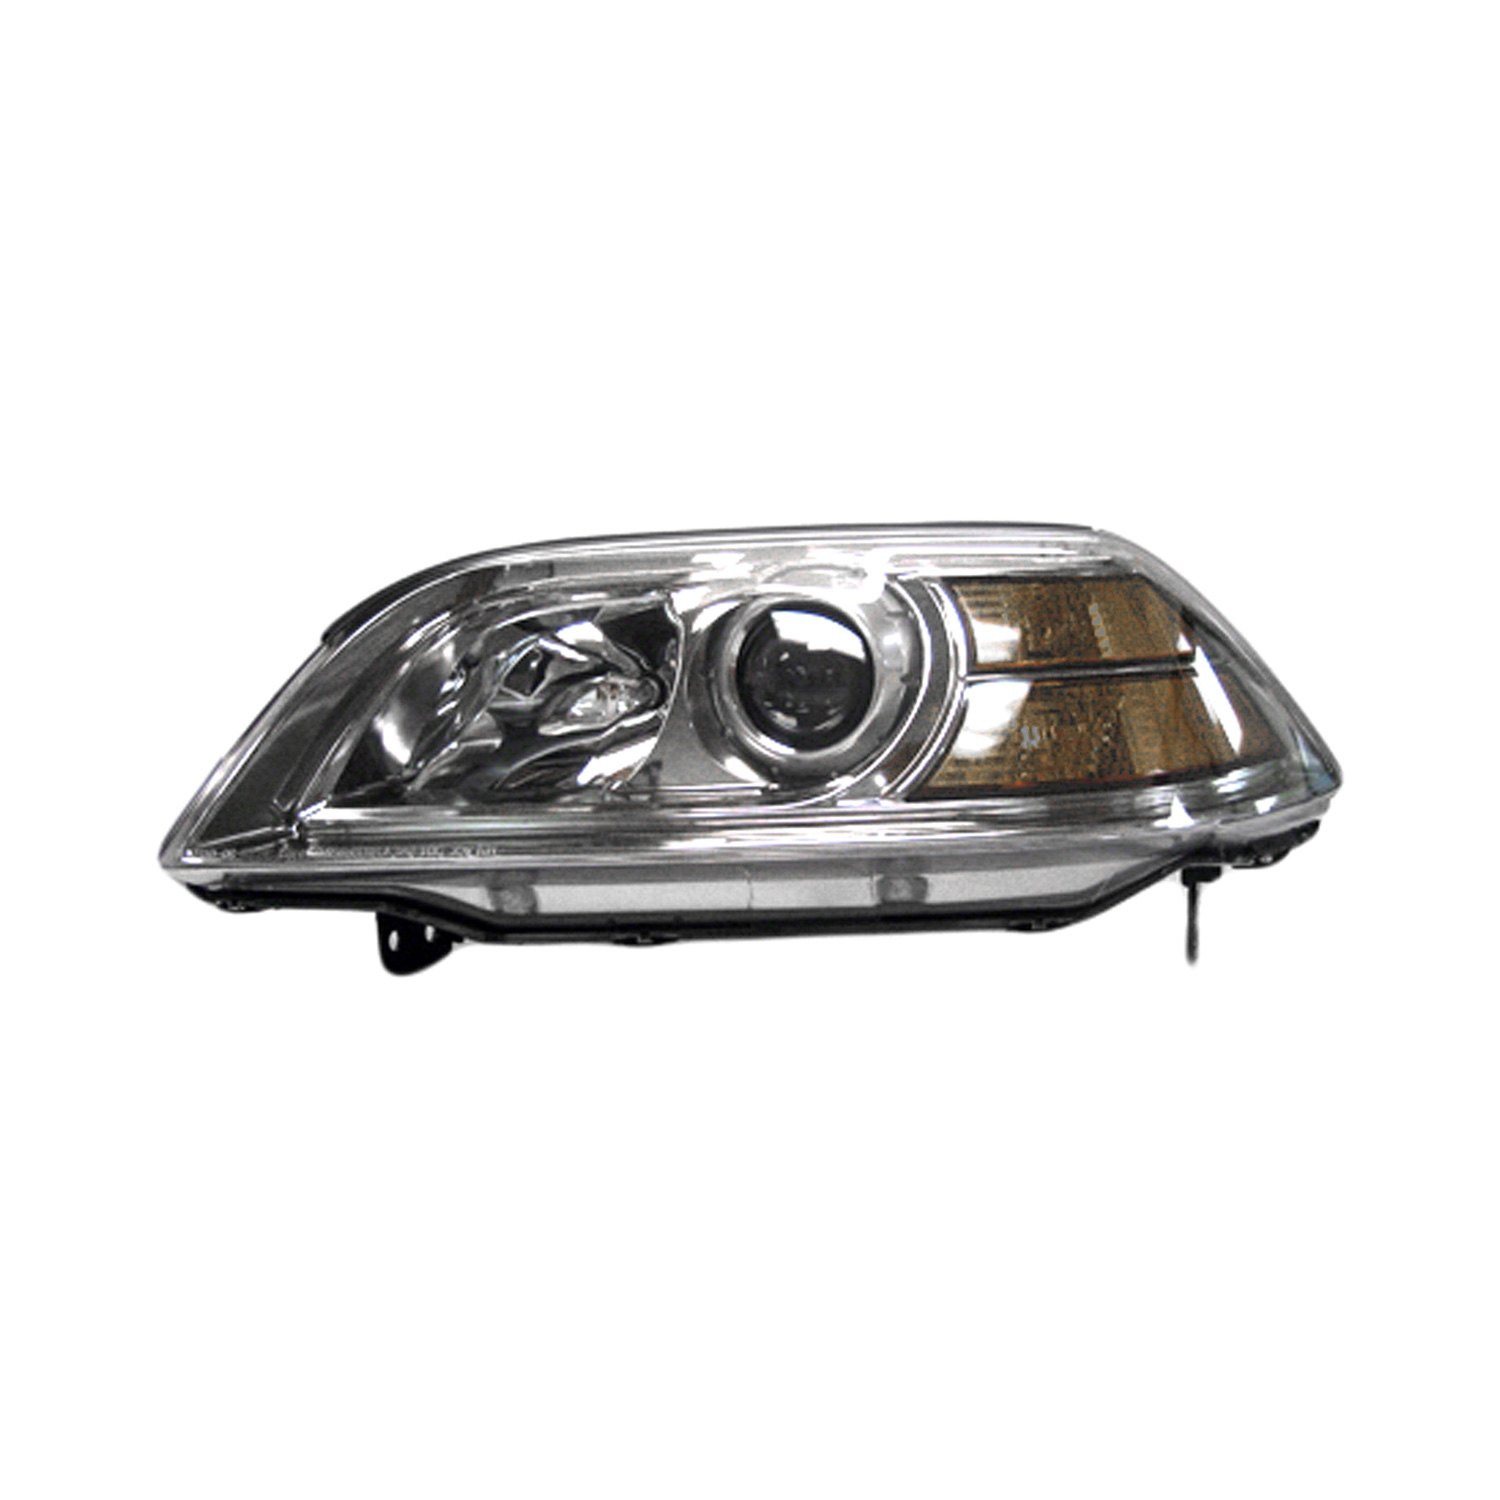 Acura MDX 2004 Replacement Headlight Lens And